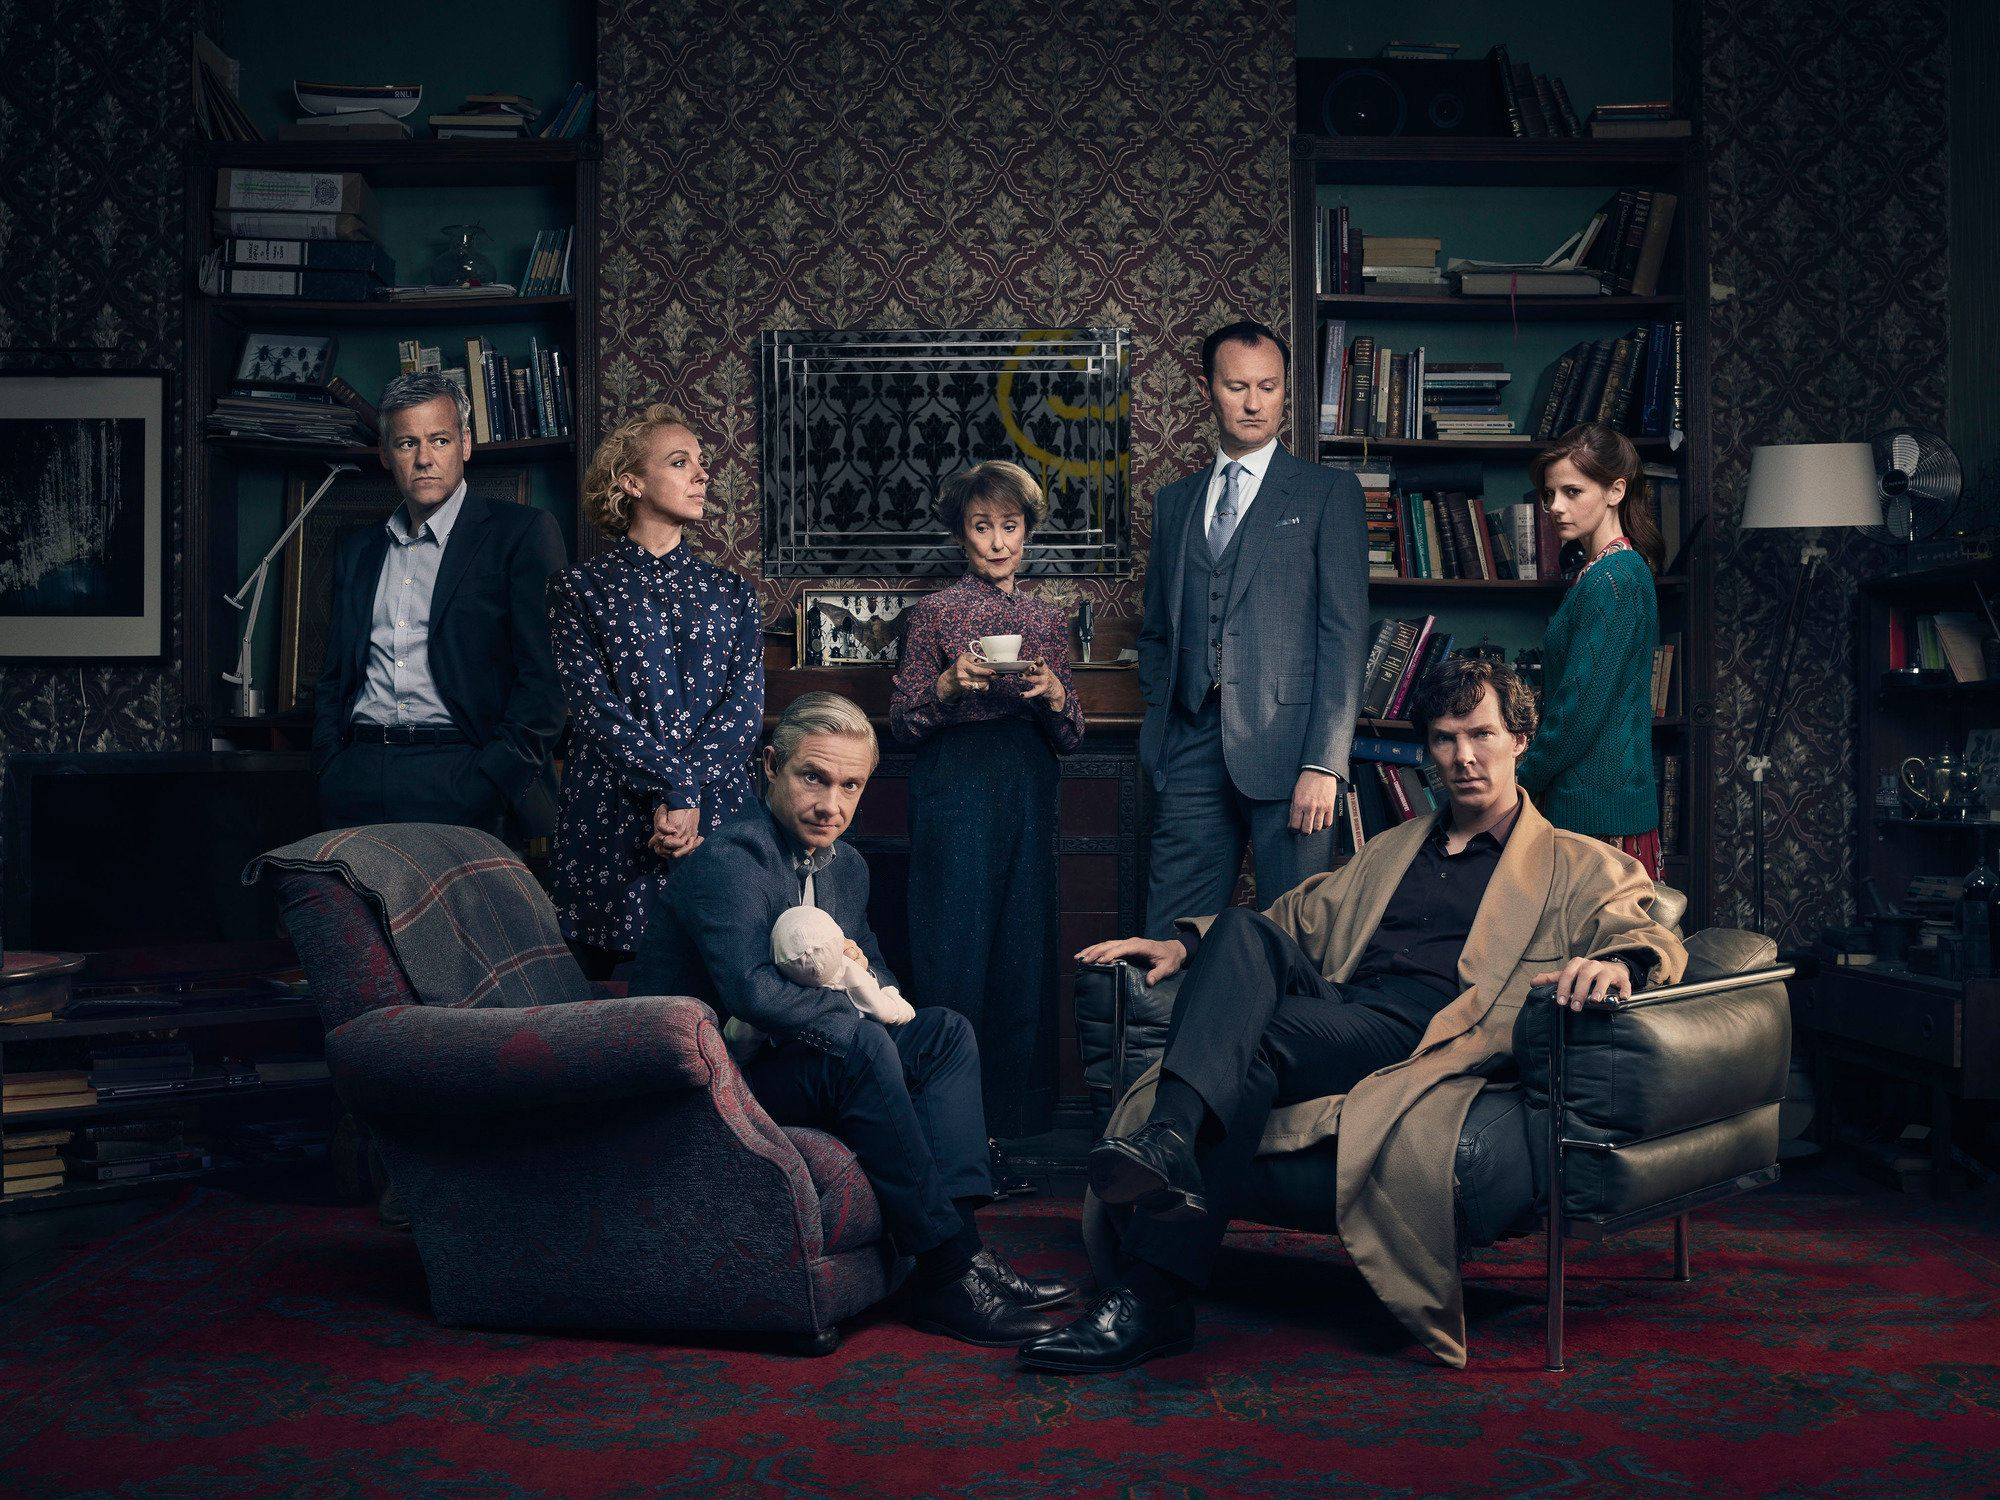 'Sherlock' comes to an end